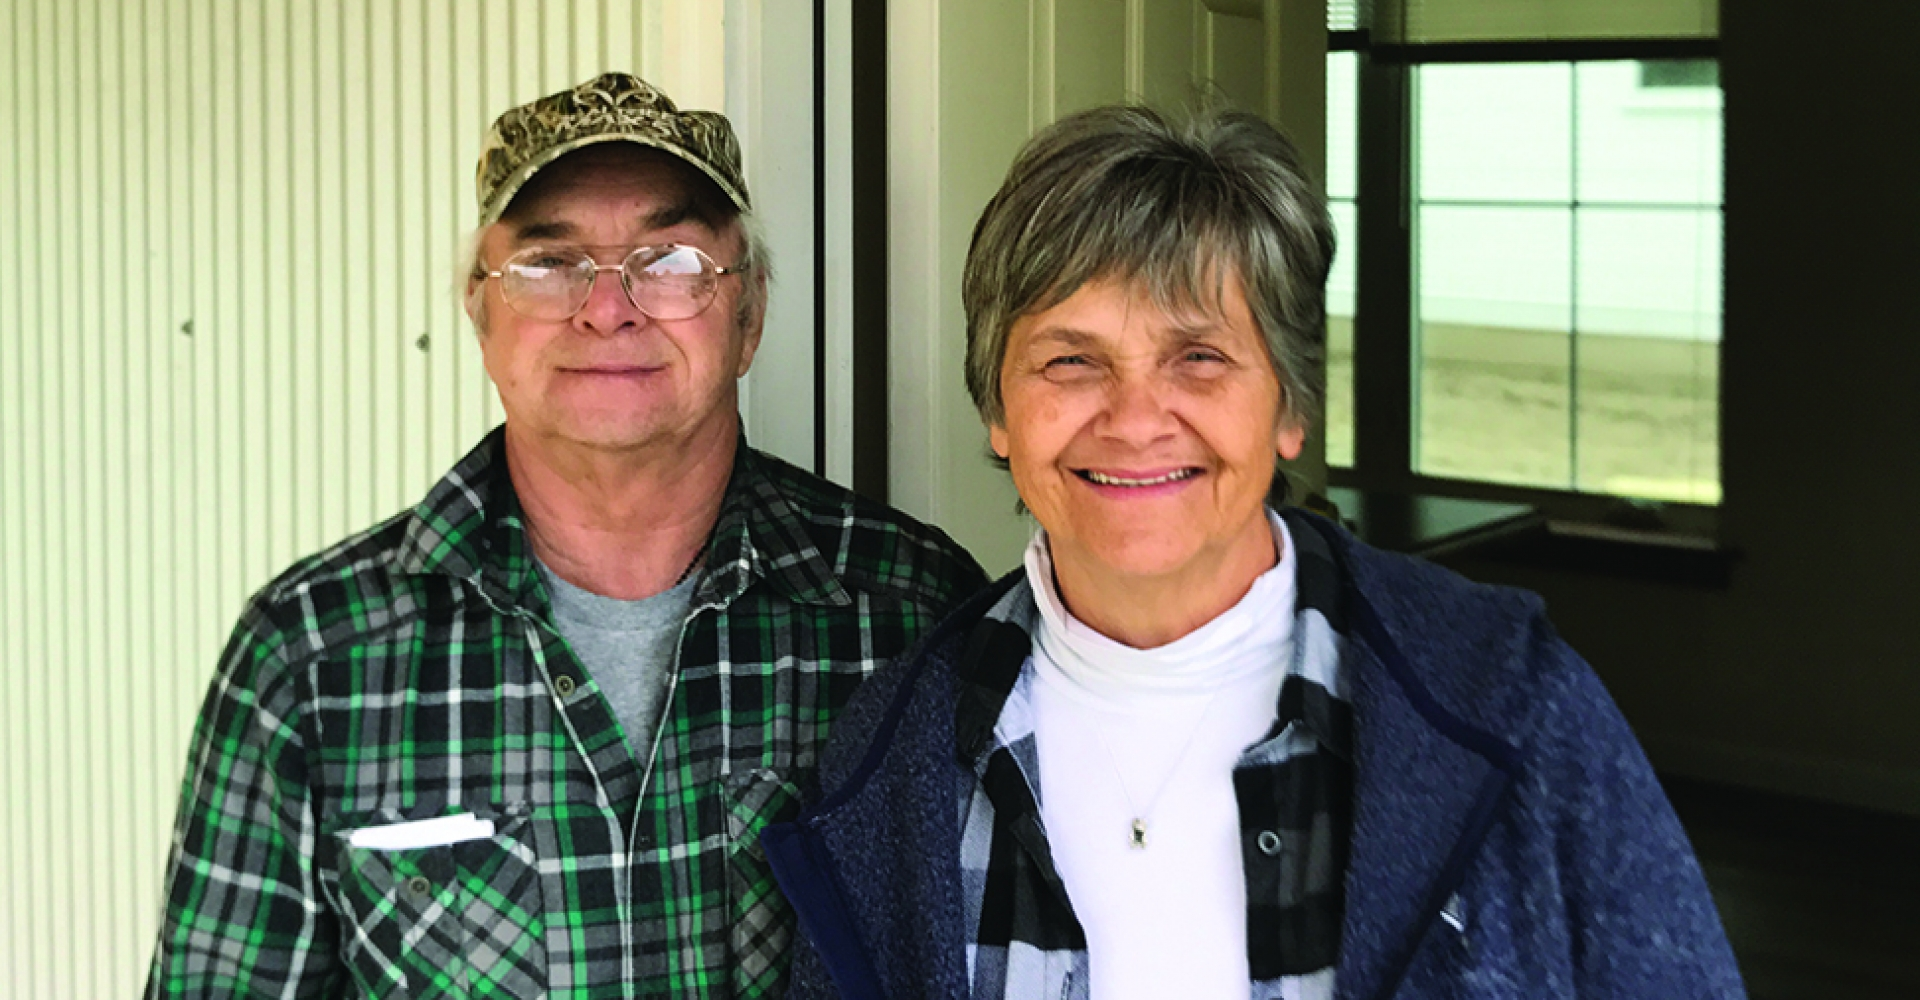 Bill and Pauline Boyce rent a ZEM home at Evergreen Manor in Hardwick